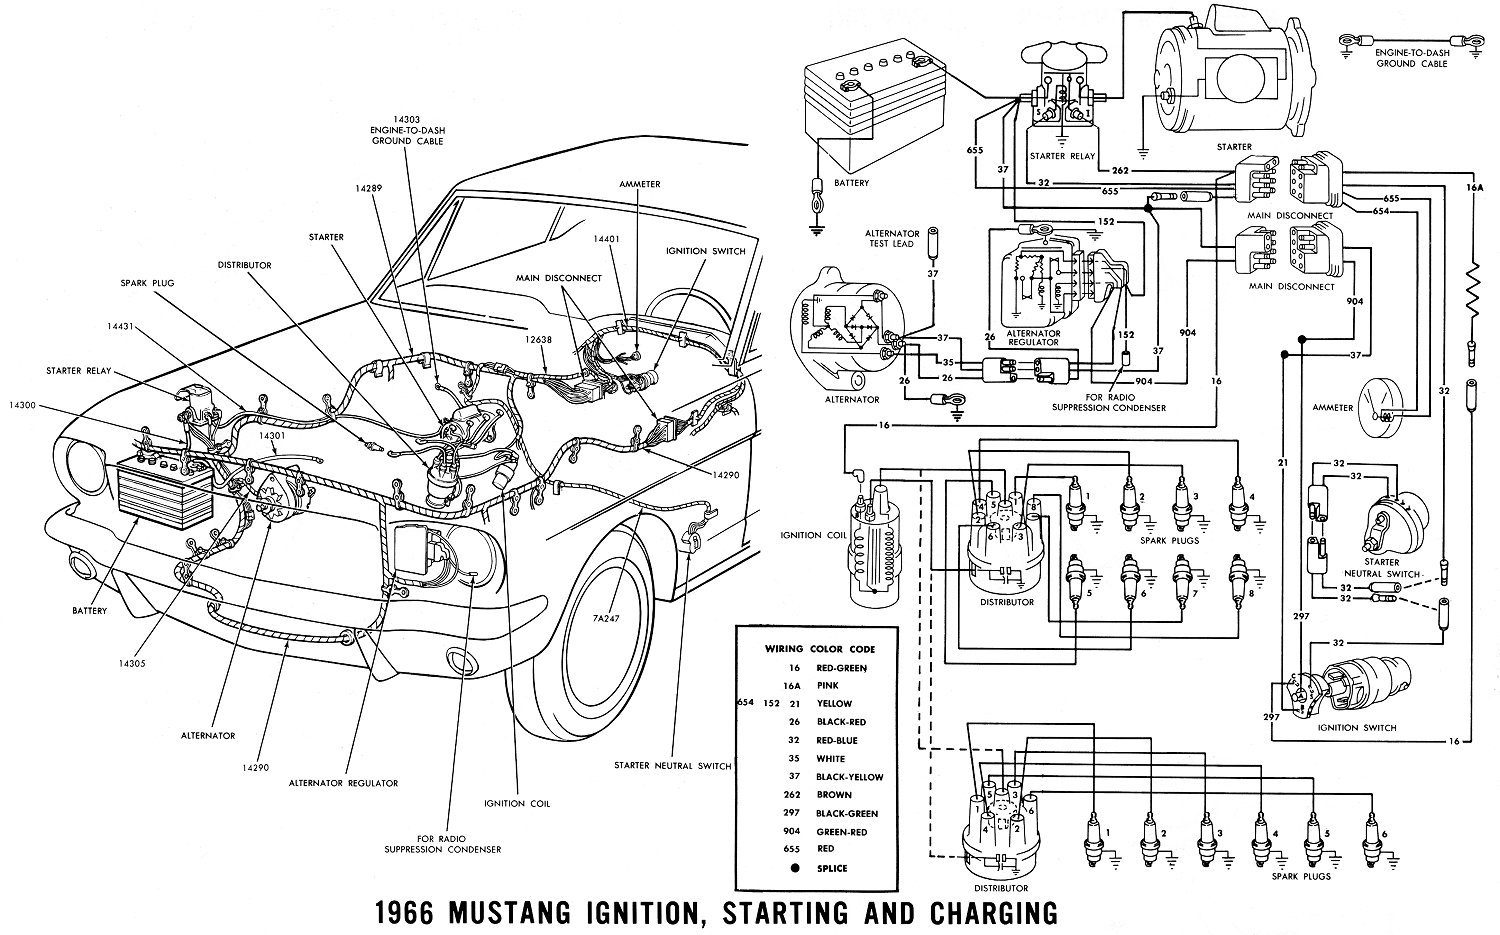 1966 ford pinto wiring diagram electric choke wiring question ford mustang forum click image for larger version 66 mustang wiring jpg